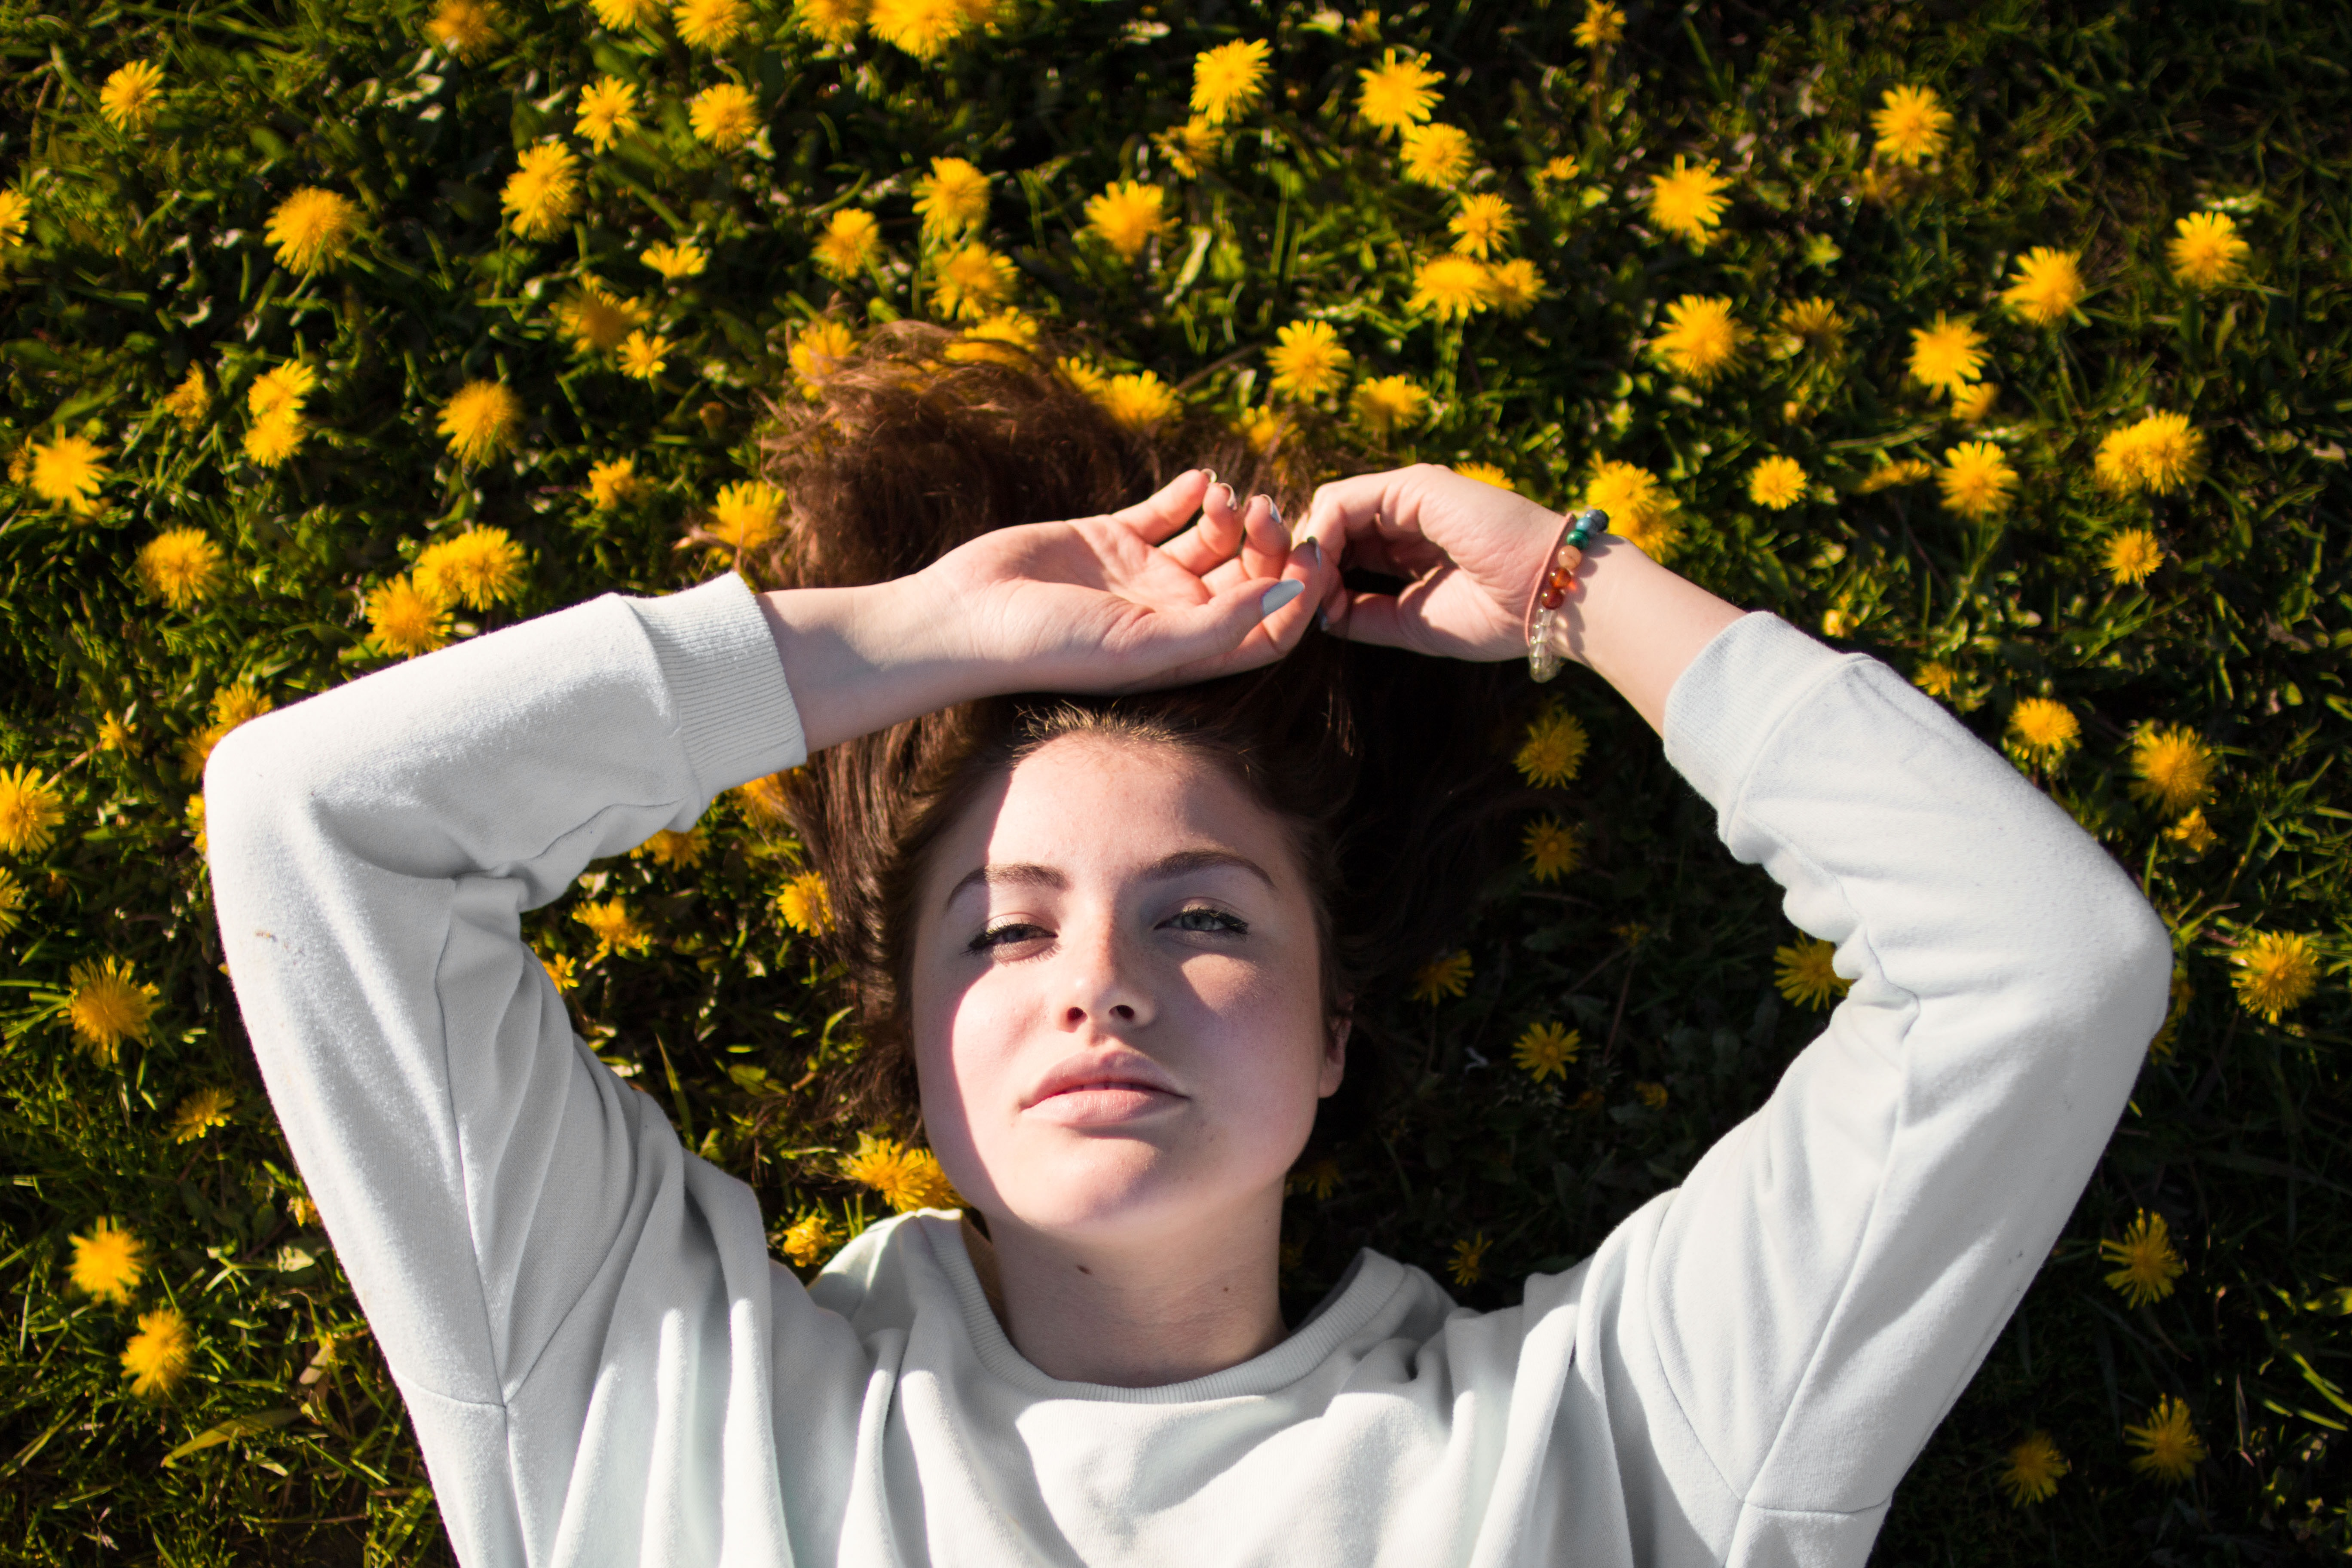 A woman in a sweatshirt lays in a field of yellow dandelions